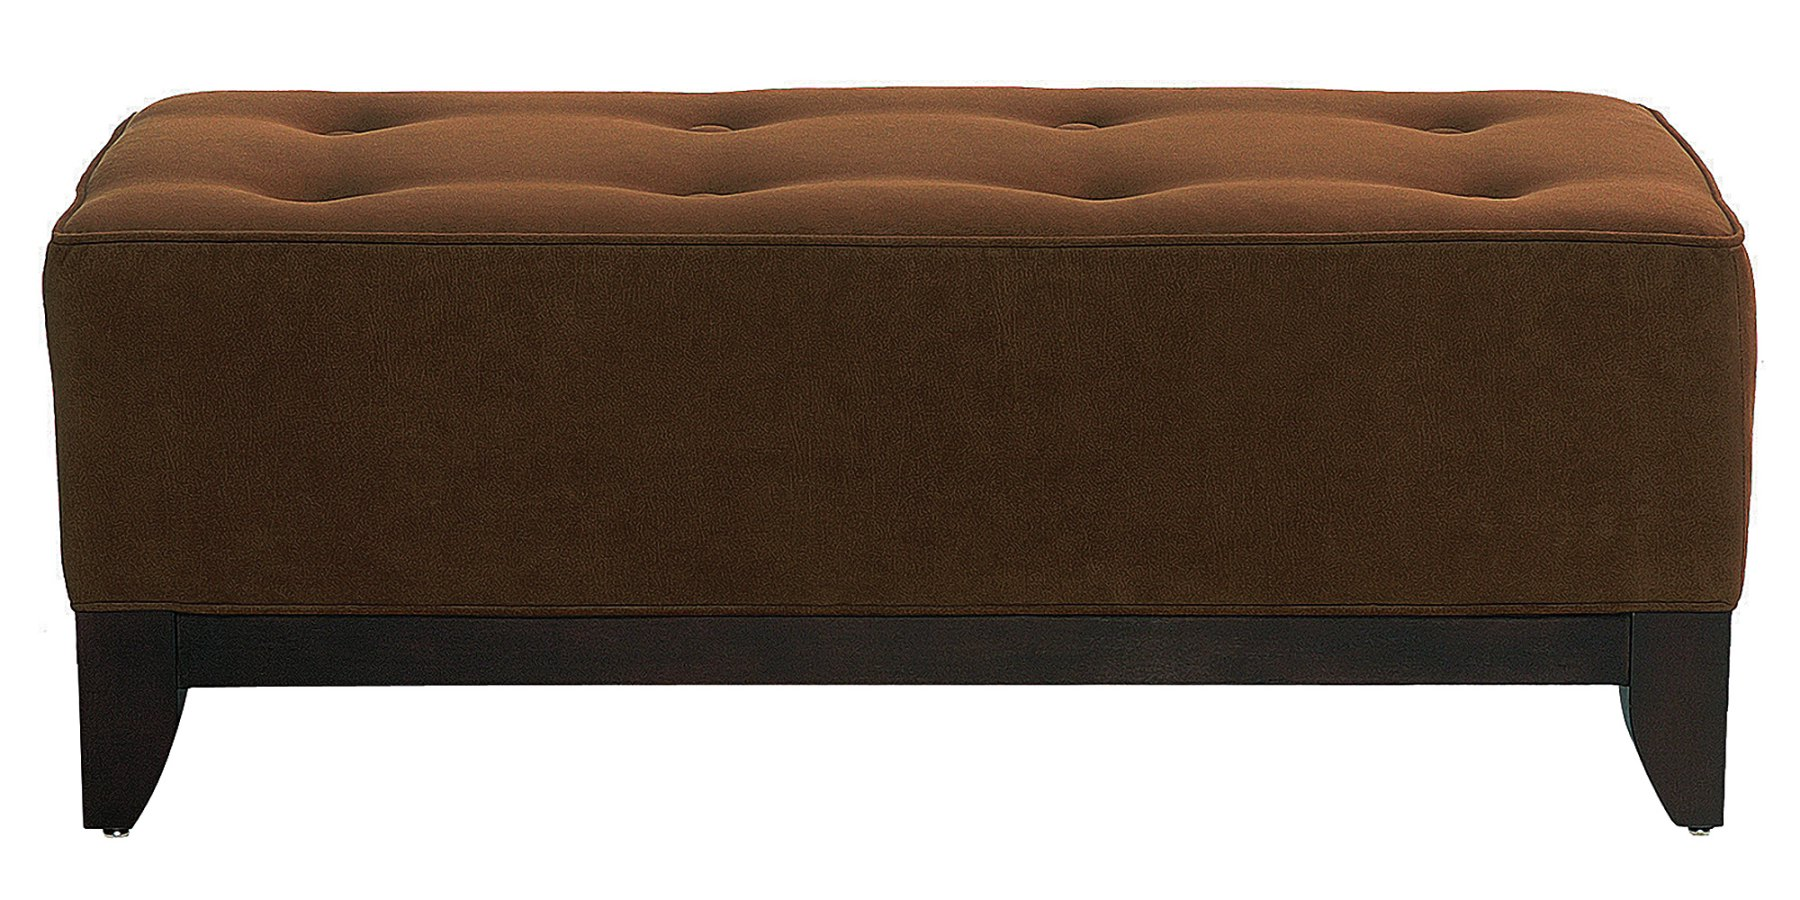 Fabric Upholstered Coffee Table Ottoman Club Furniture